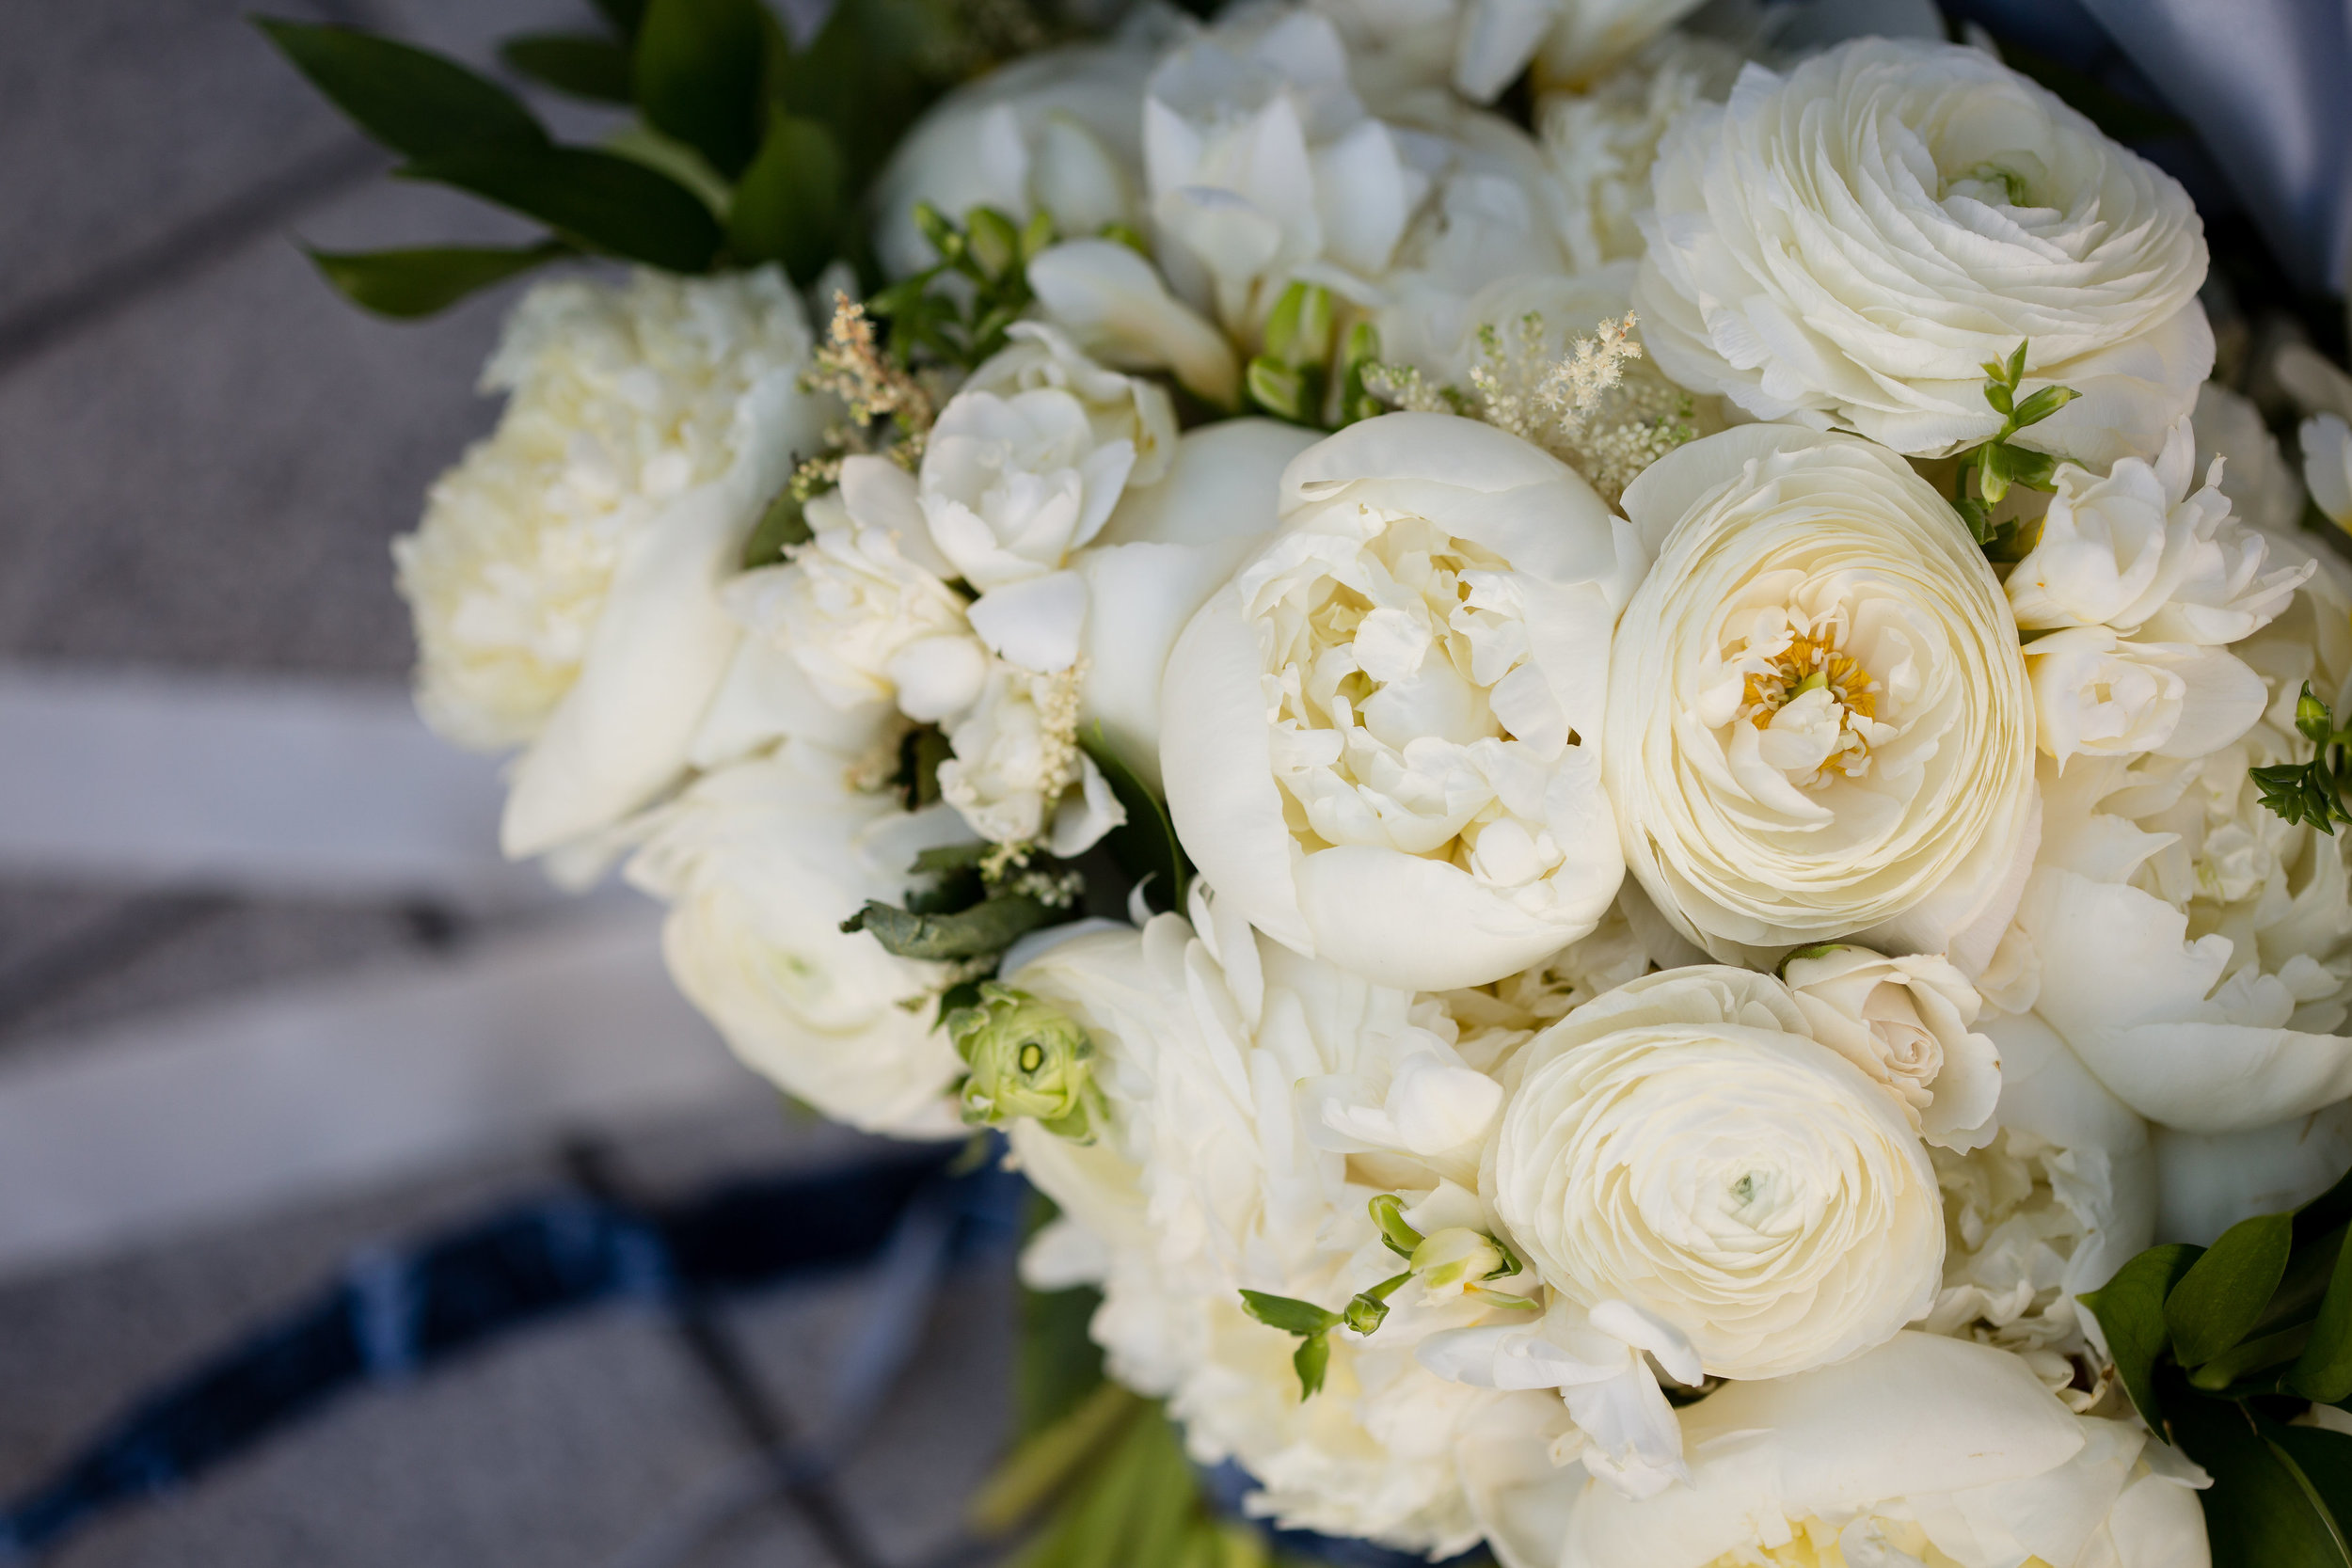 Wedding Bouquet with Peonies, Ranunculus, Freesia, and Astilbe